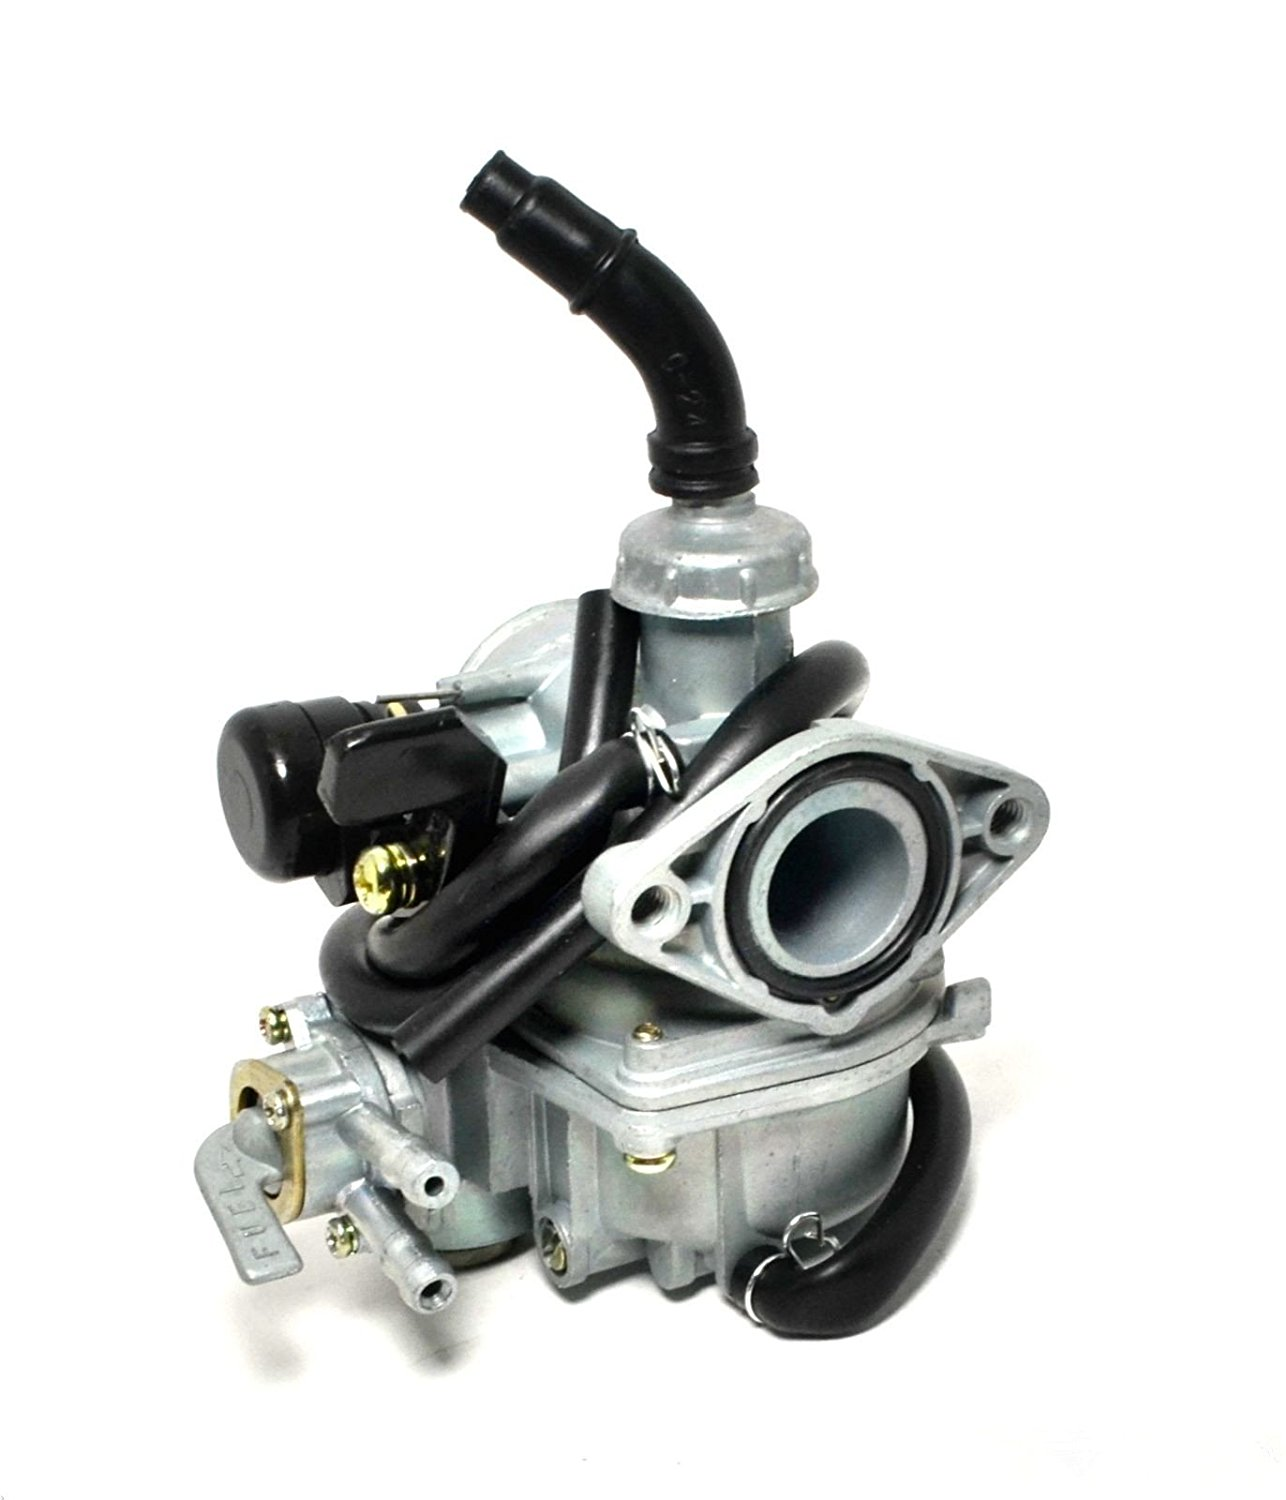 Cheap Ct90 Parts Find Deals On Line At Alibabacom 1970 Honda Ct70 Engine Get Quotations Carburetor For St70 St90 Ct St 70 Trail Bike Carb